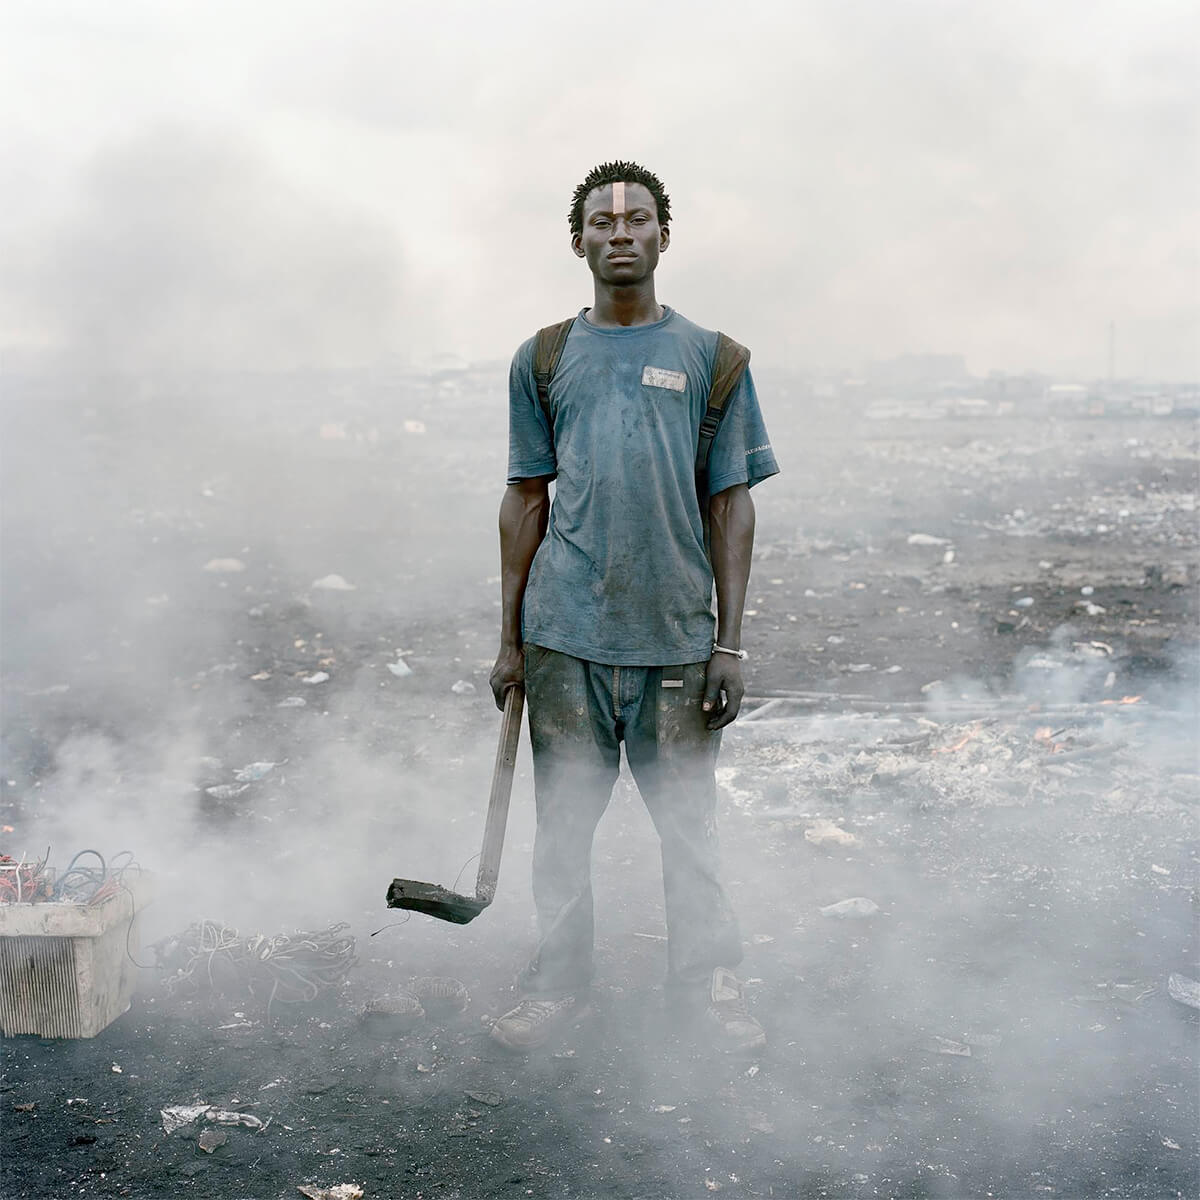 Pieter Hugo - From the series Permanent Error, Aissah Salifu, Agbogbloshie Market, Accra, Ghana, 2010 - Digital C-Print ©Pieter Hugo, Courtesy Yossi Milo Gallery